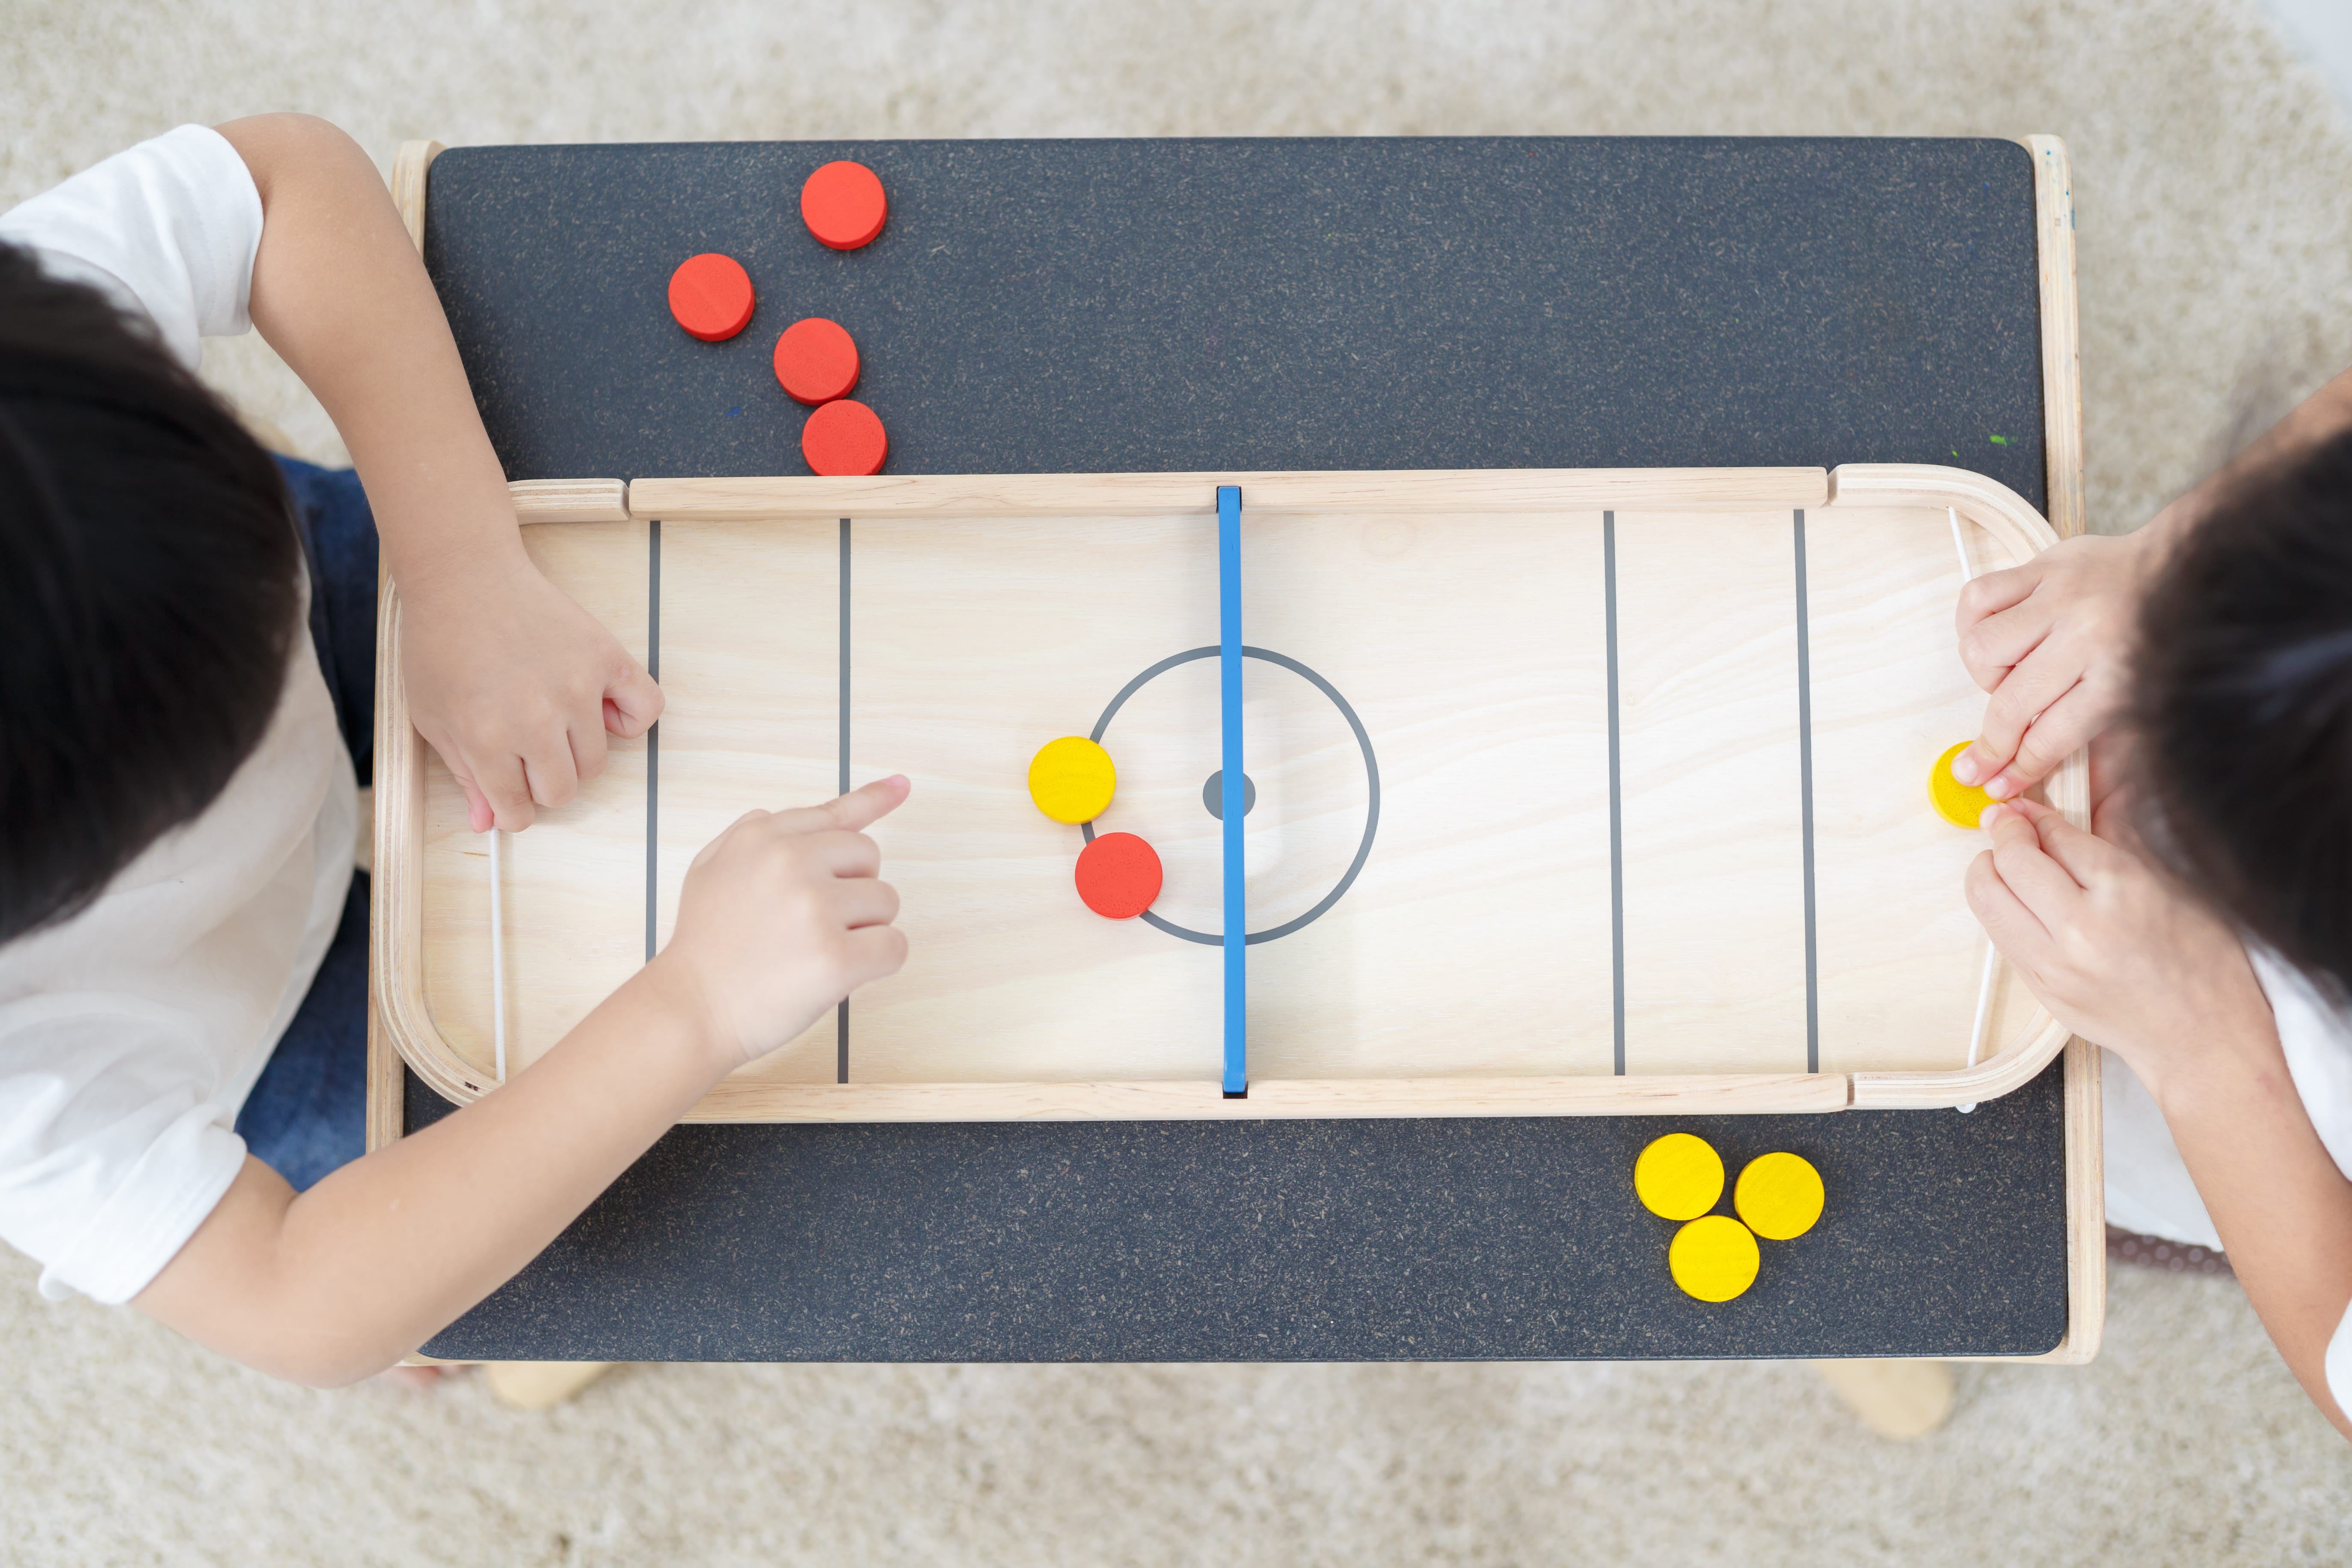 4626_PlanToys_2-IN-1_SHUFFLEBOARD-GAME_Game_and_Puzzles_Fine_Motor_Coordination_Social_Language_and_Communications_Mathematical_3yrs_Wooden_toys_Education_toys_Safety_Toys_Non-toxic_0.jpg